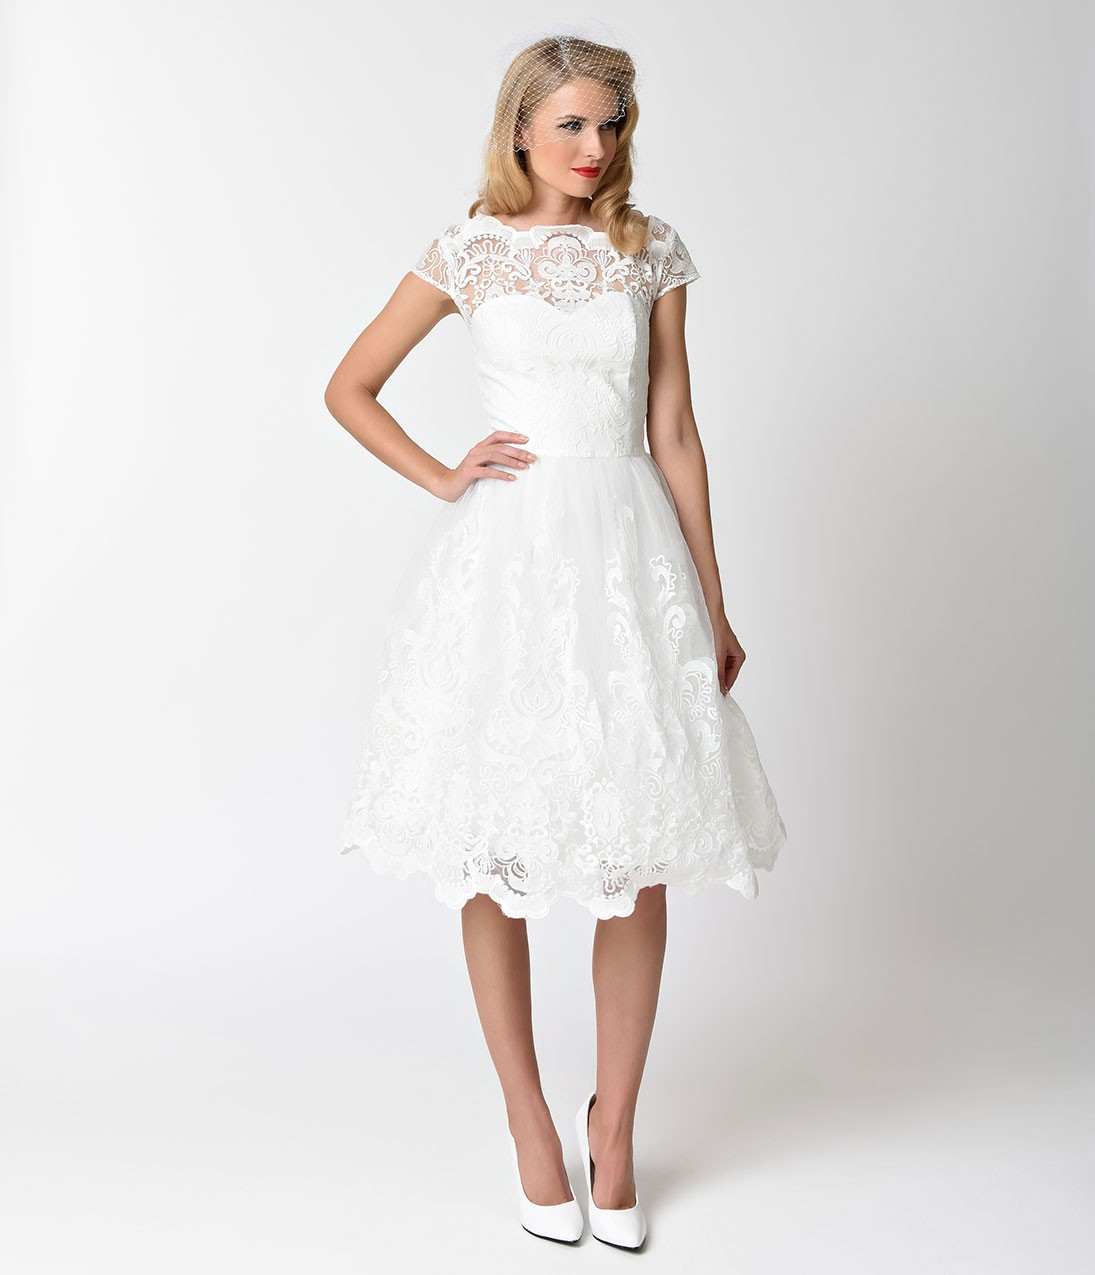 Vintage Wedding Dresses In London: Here Are 22 Affordable Retro-inspired Wedding Dresses That